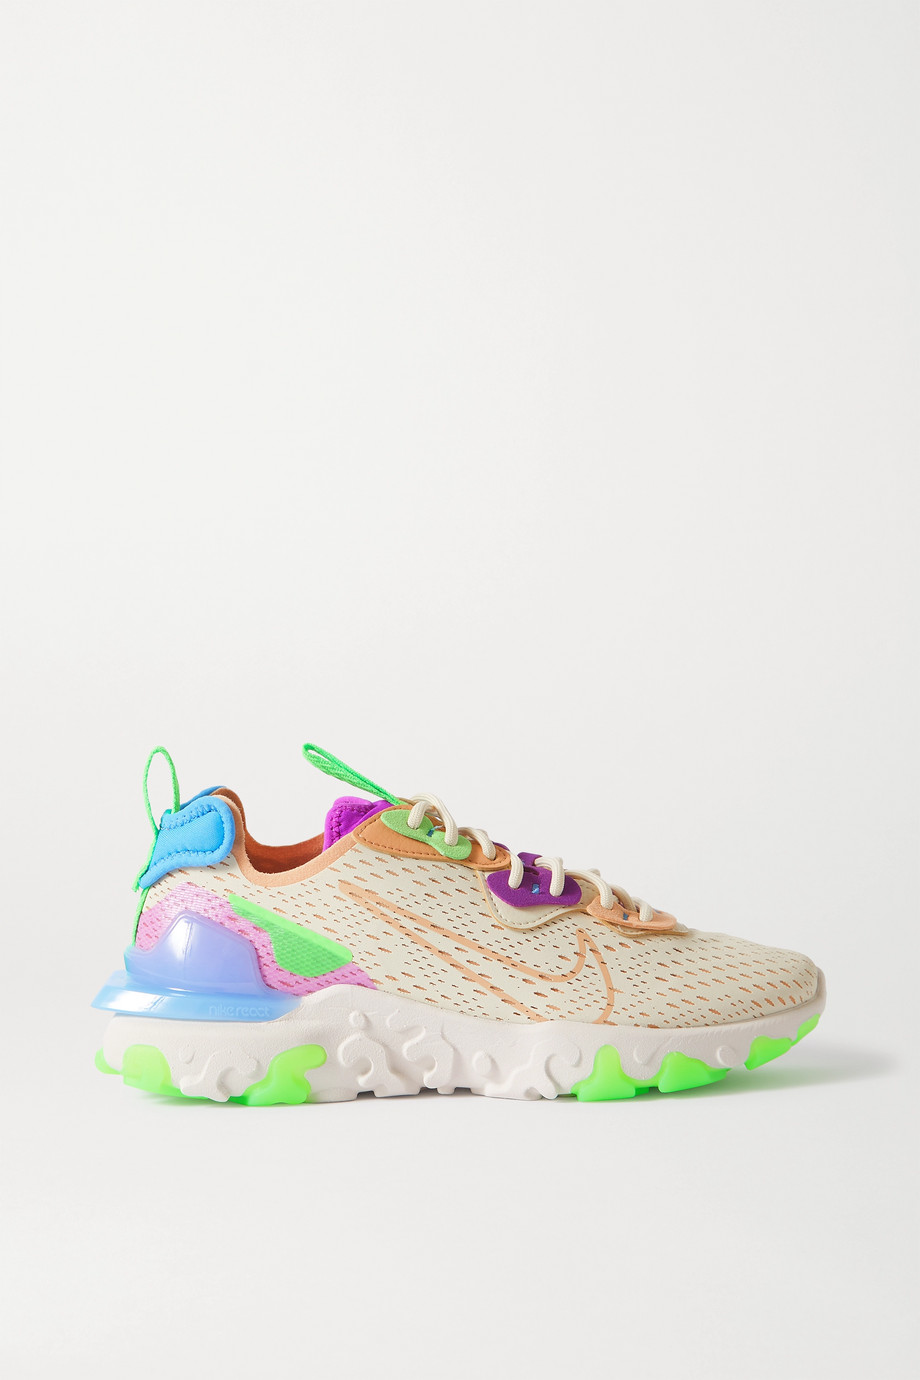 Nike React Vision mesh, felt and faux leather sneakers